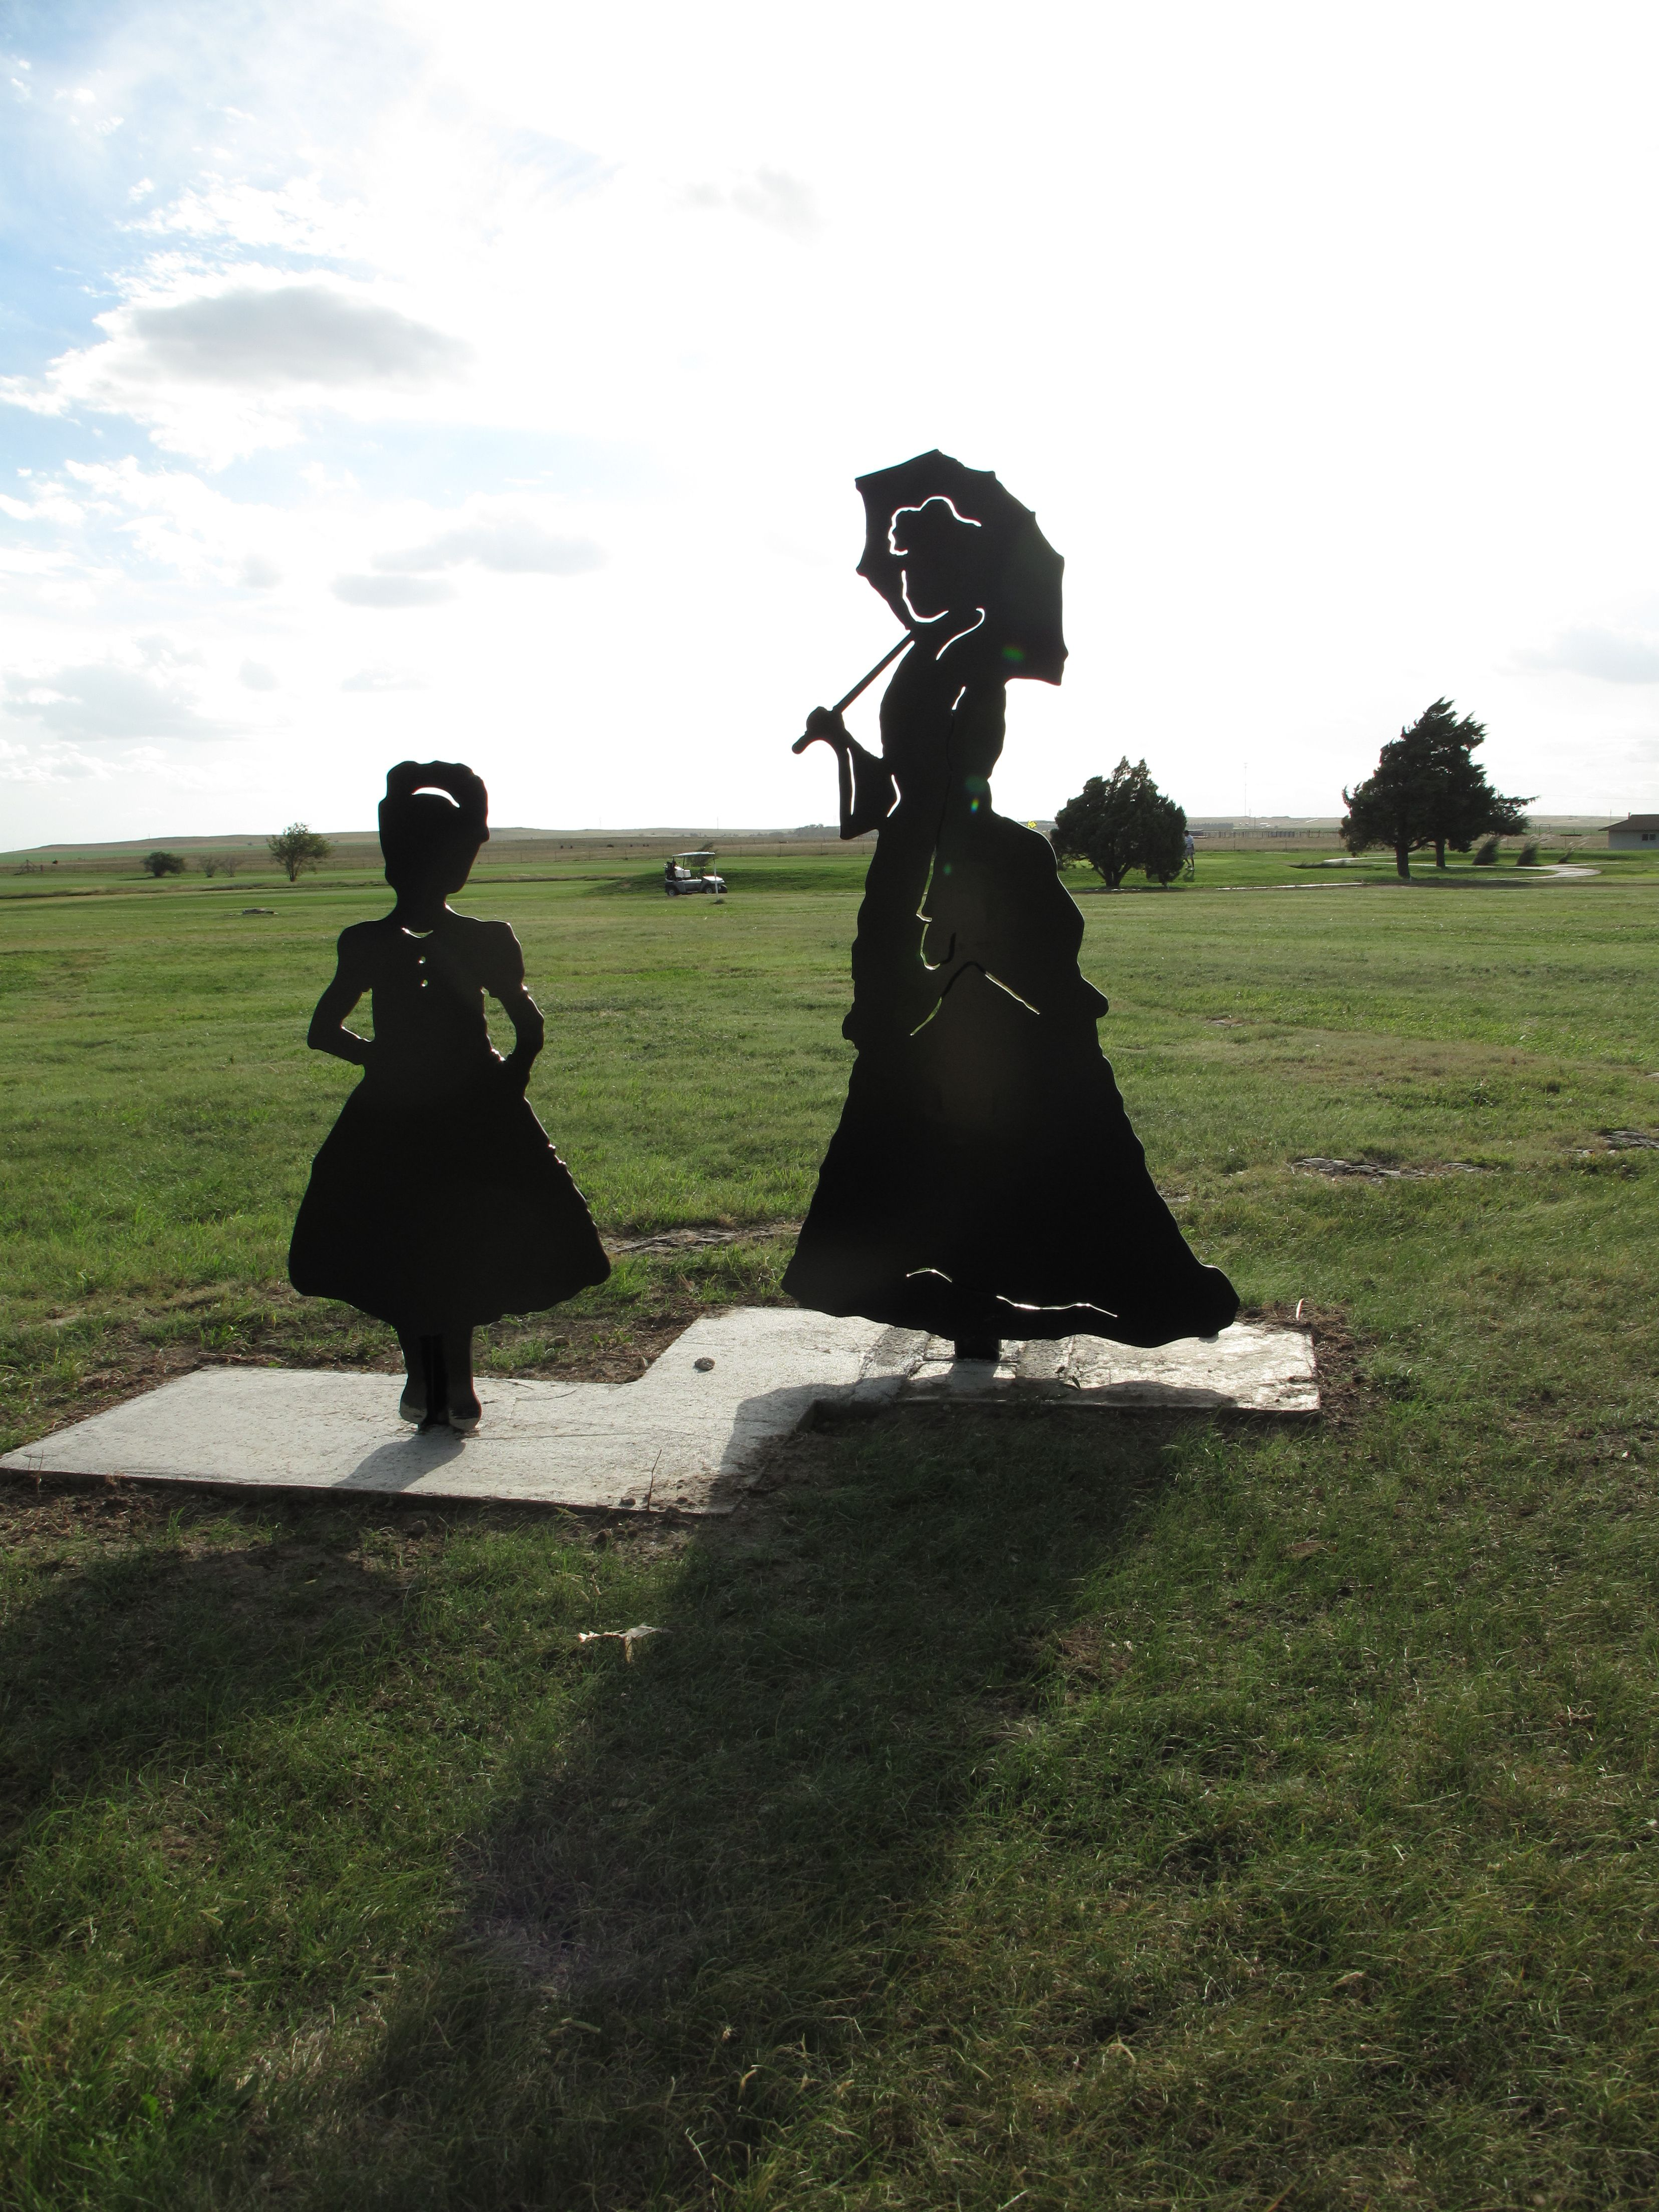 Silhouette of a well-dressed woman at Hays